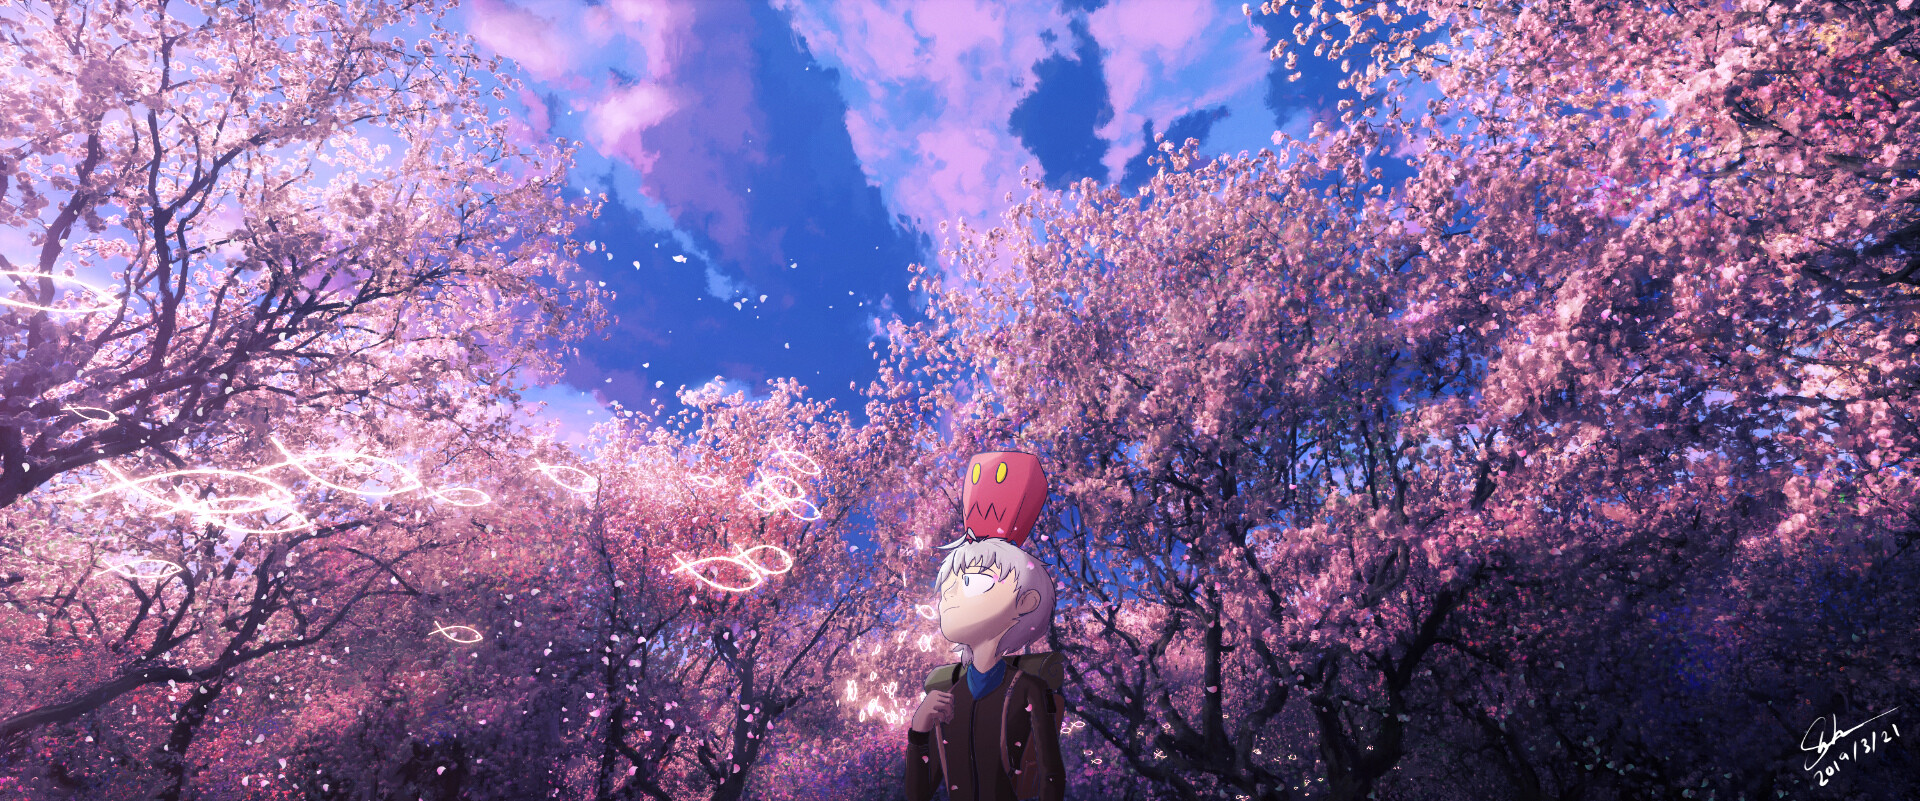 SideTrip : 開花 - Blossoming. This image was made in time for sakura trees blossoming.